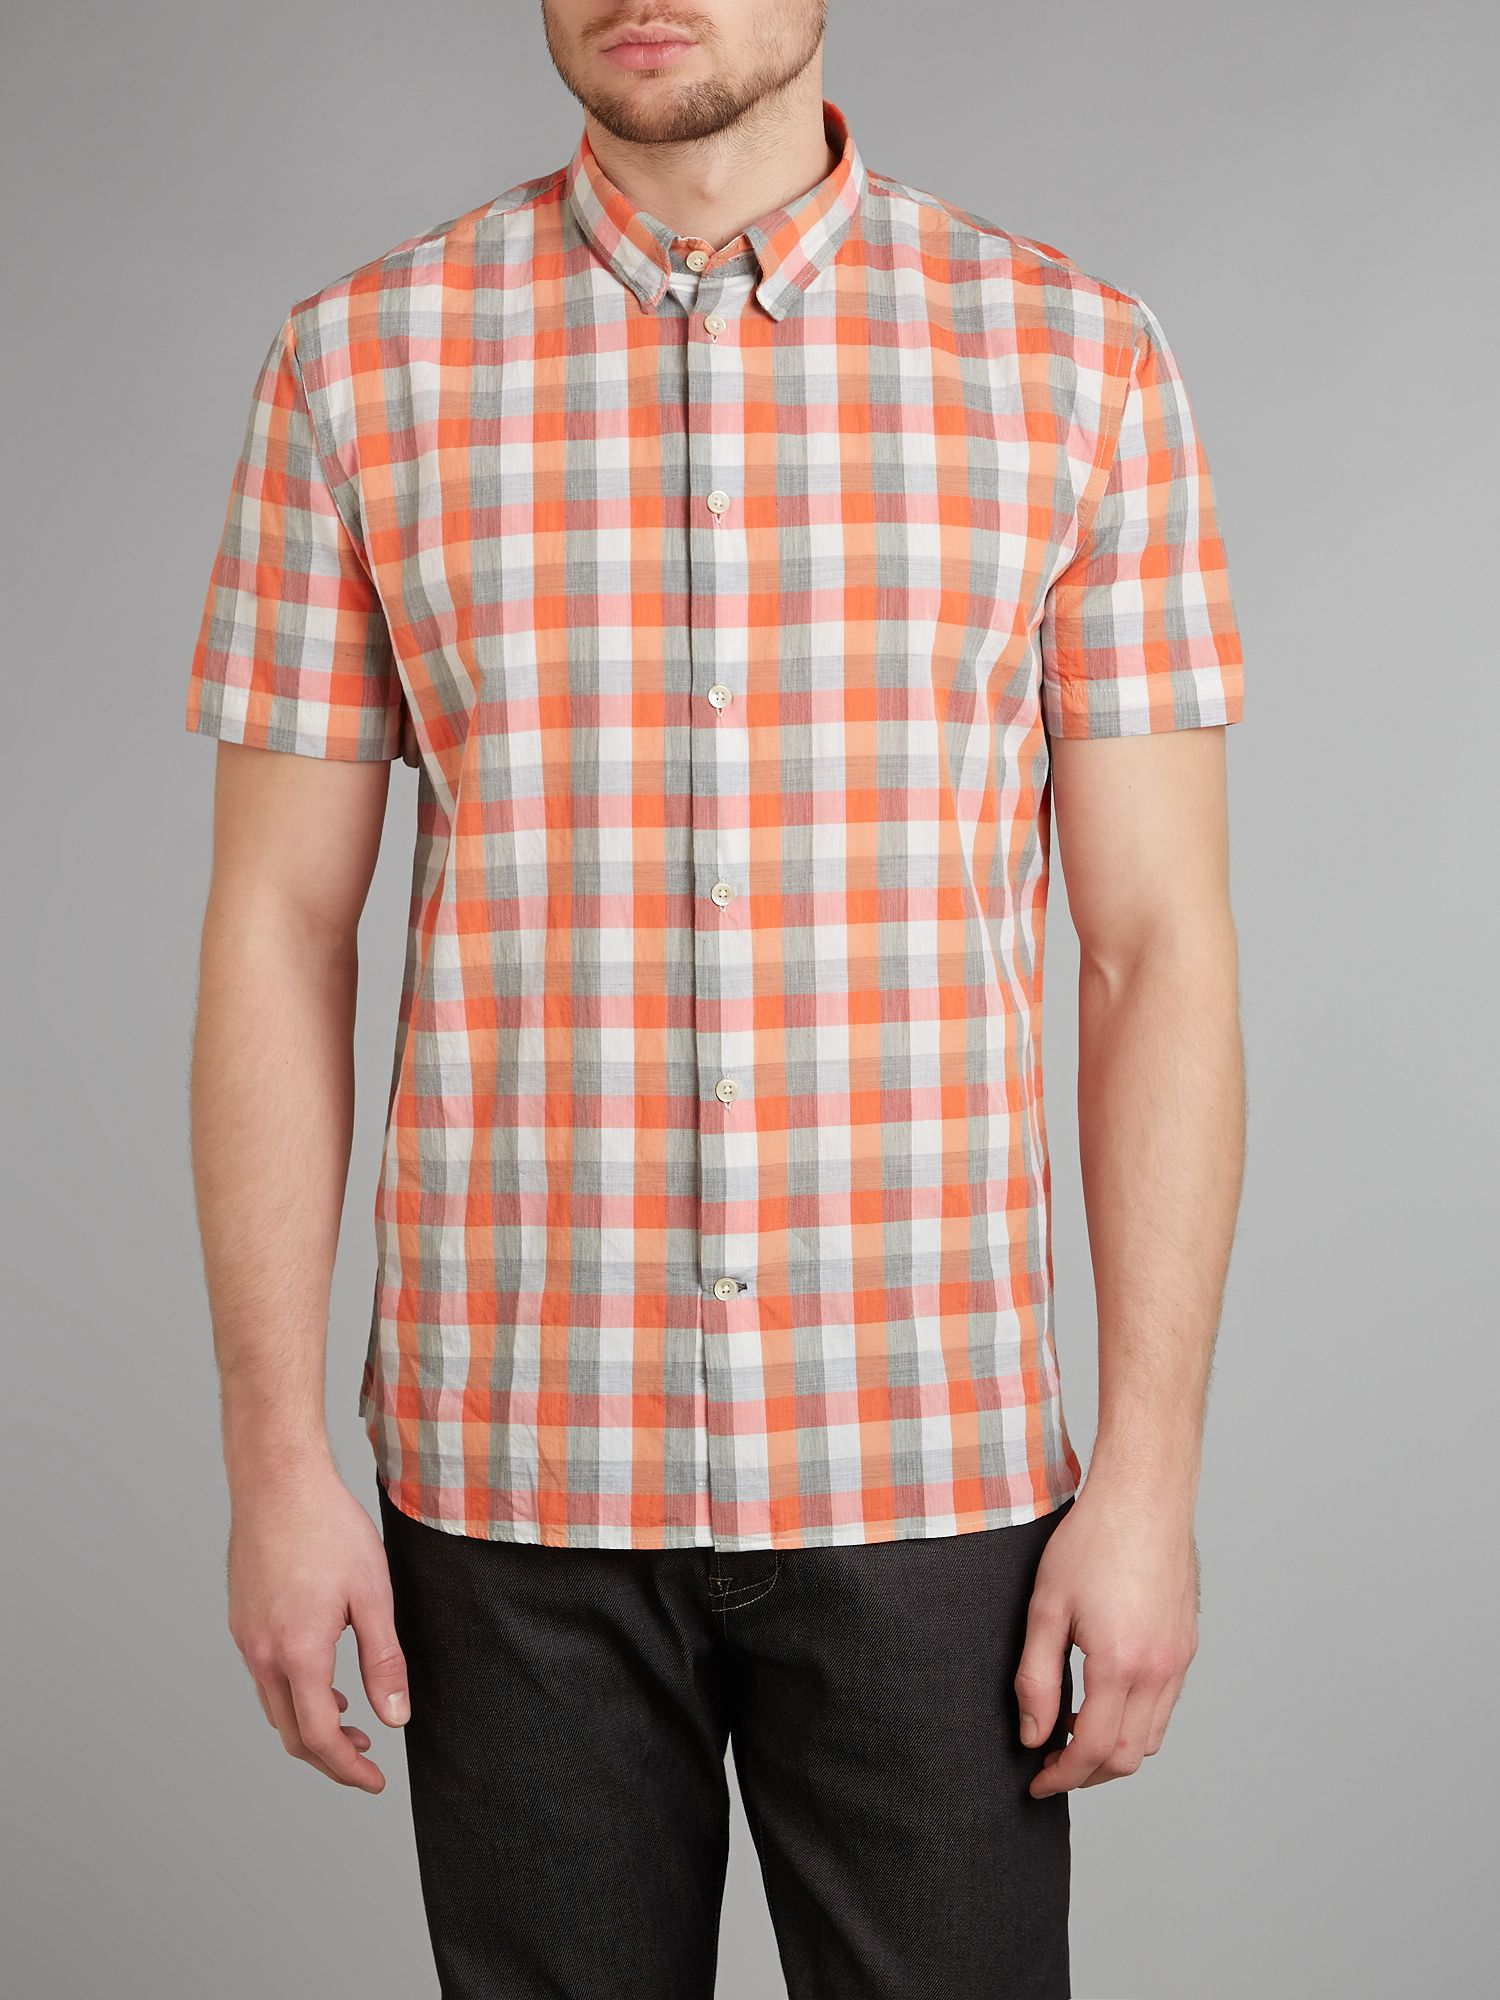 Short sleeve marl check shirt